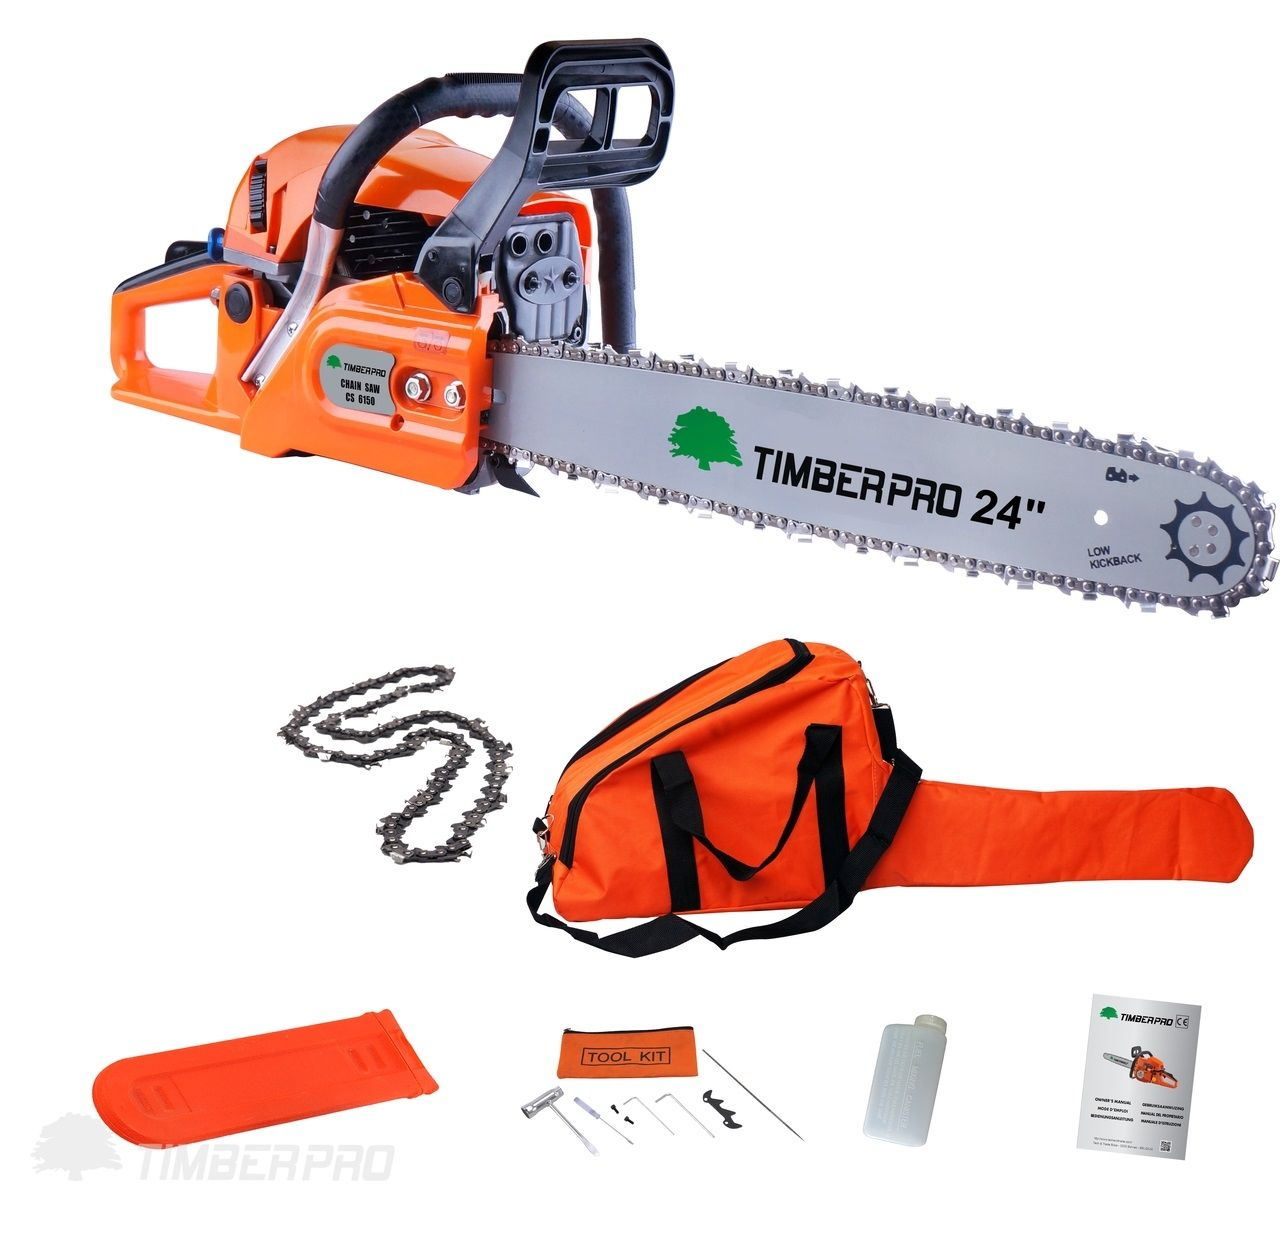 Timberpro 62cc 20 Petrol Chainsaw High Quality Designed For Both Professional And Domestic Use Comes Wit Petrol Chainsaw Chainsaw Best Riding Lawn Mower